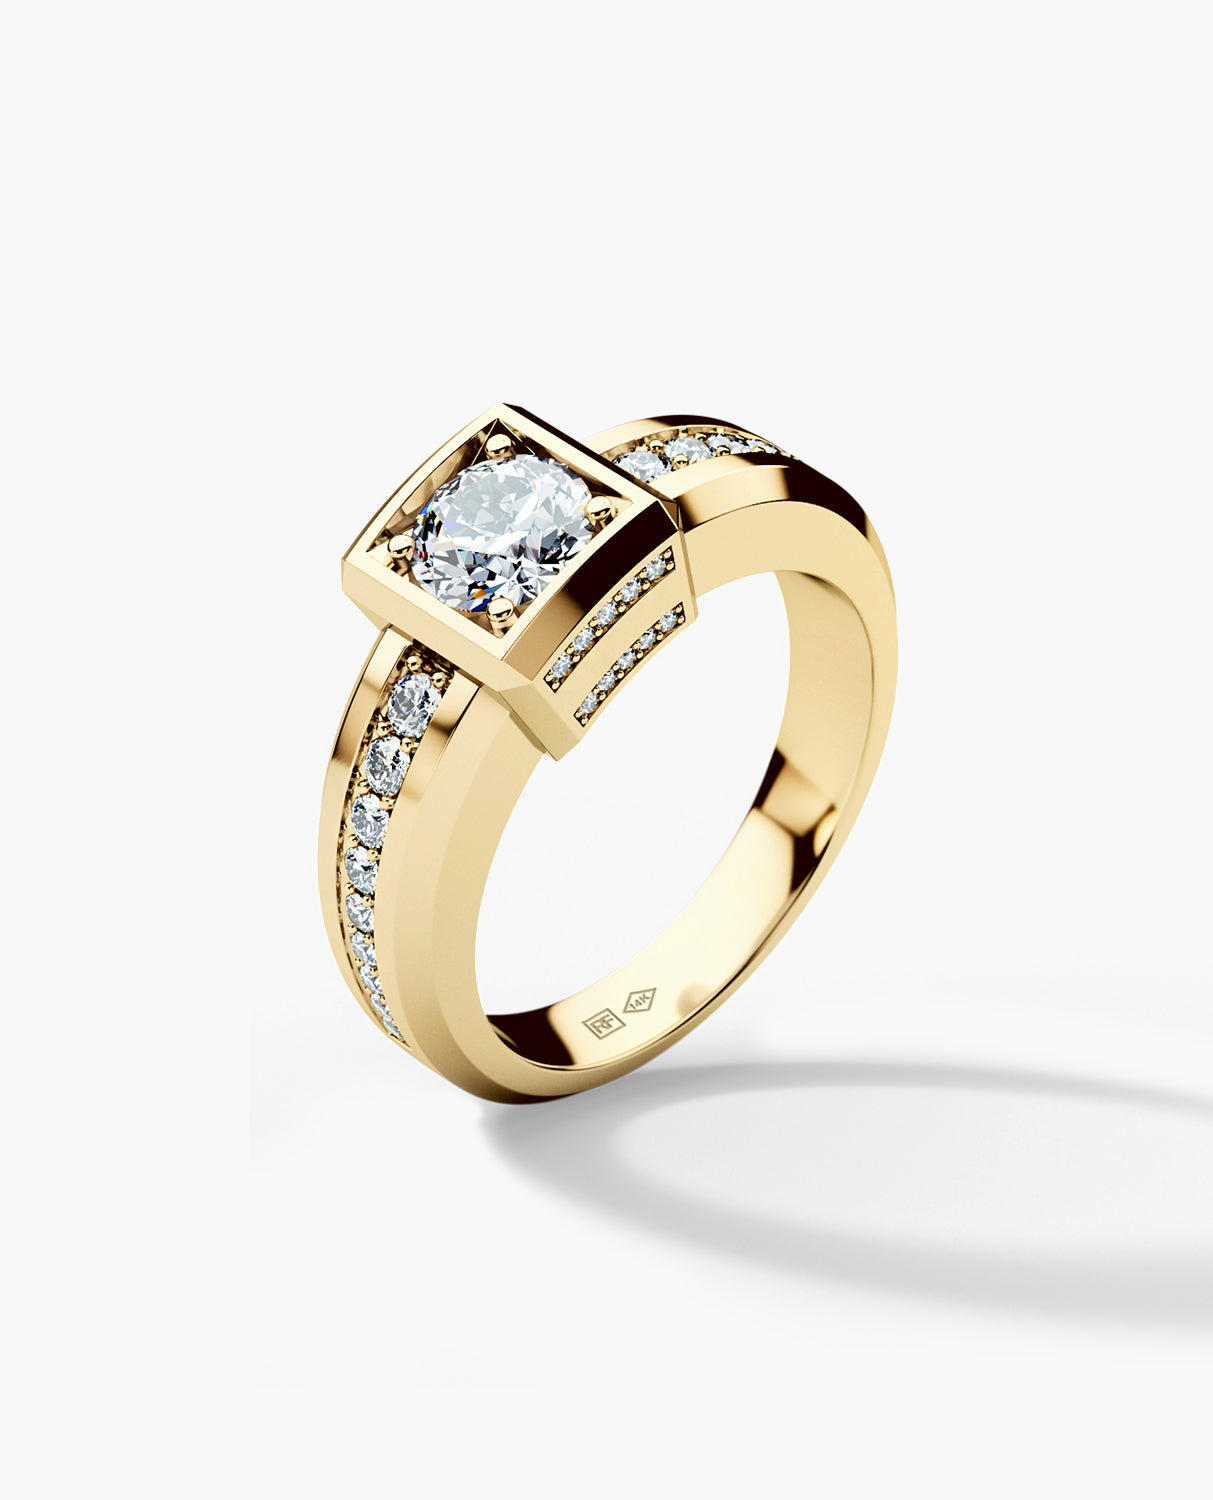 VULTURE Mens Gold Wedding Ring with 1.45 ct Diamonds